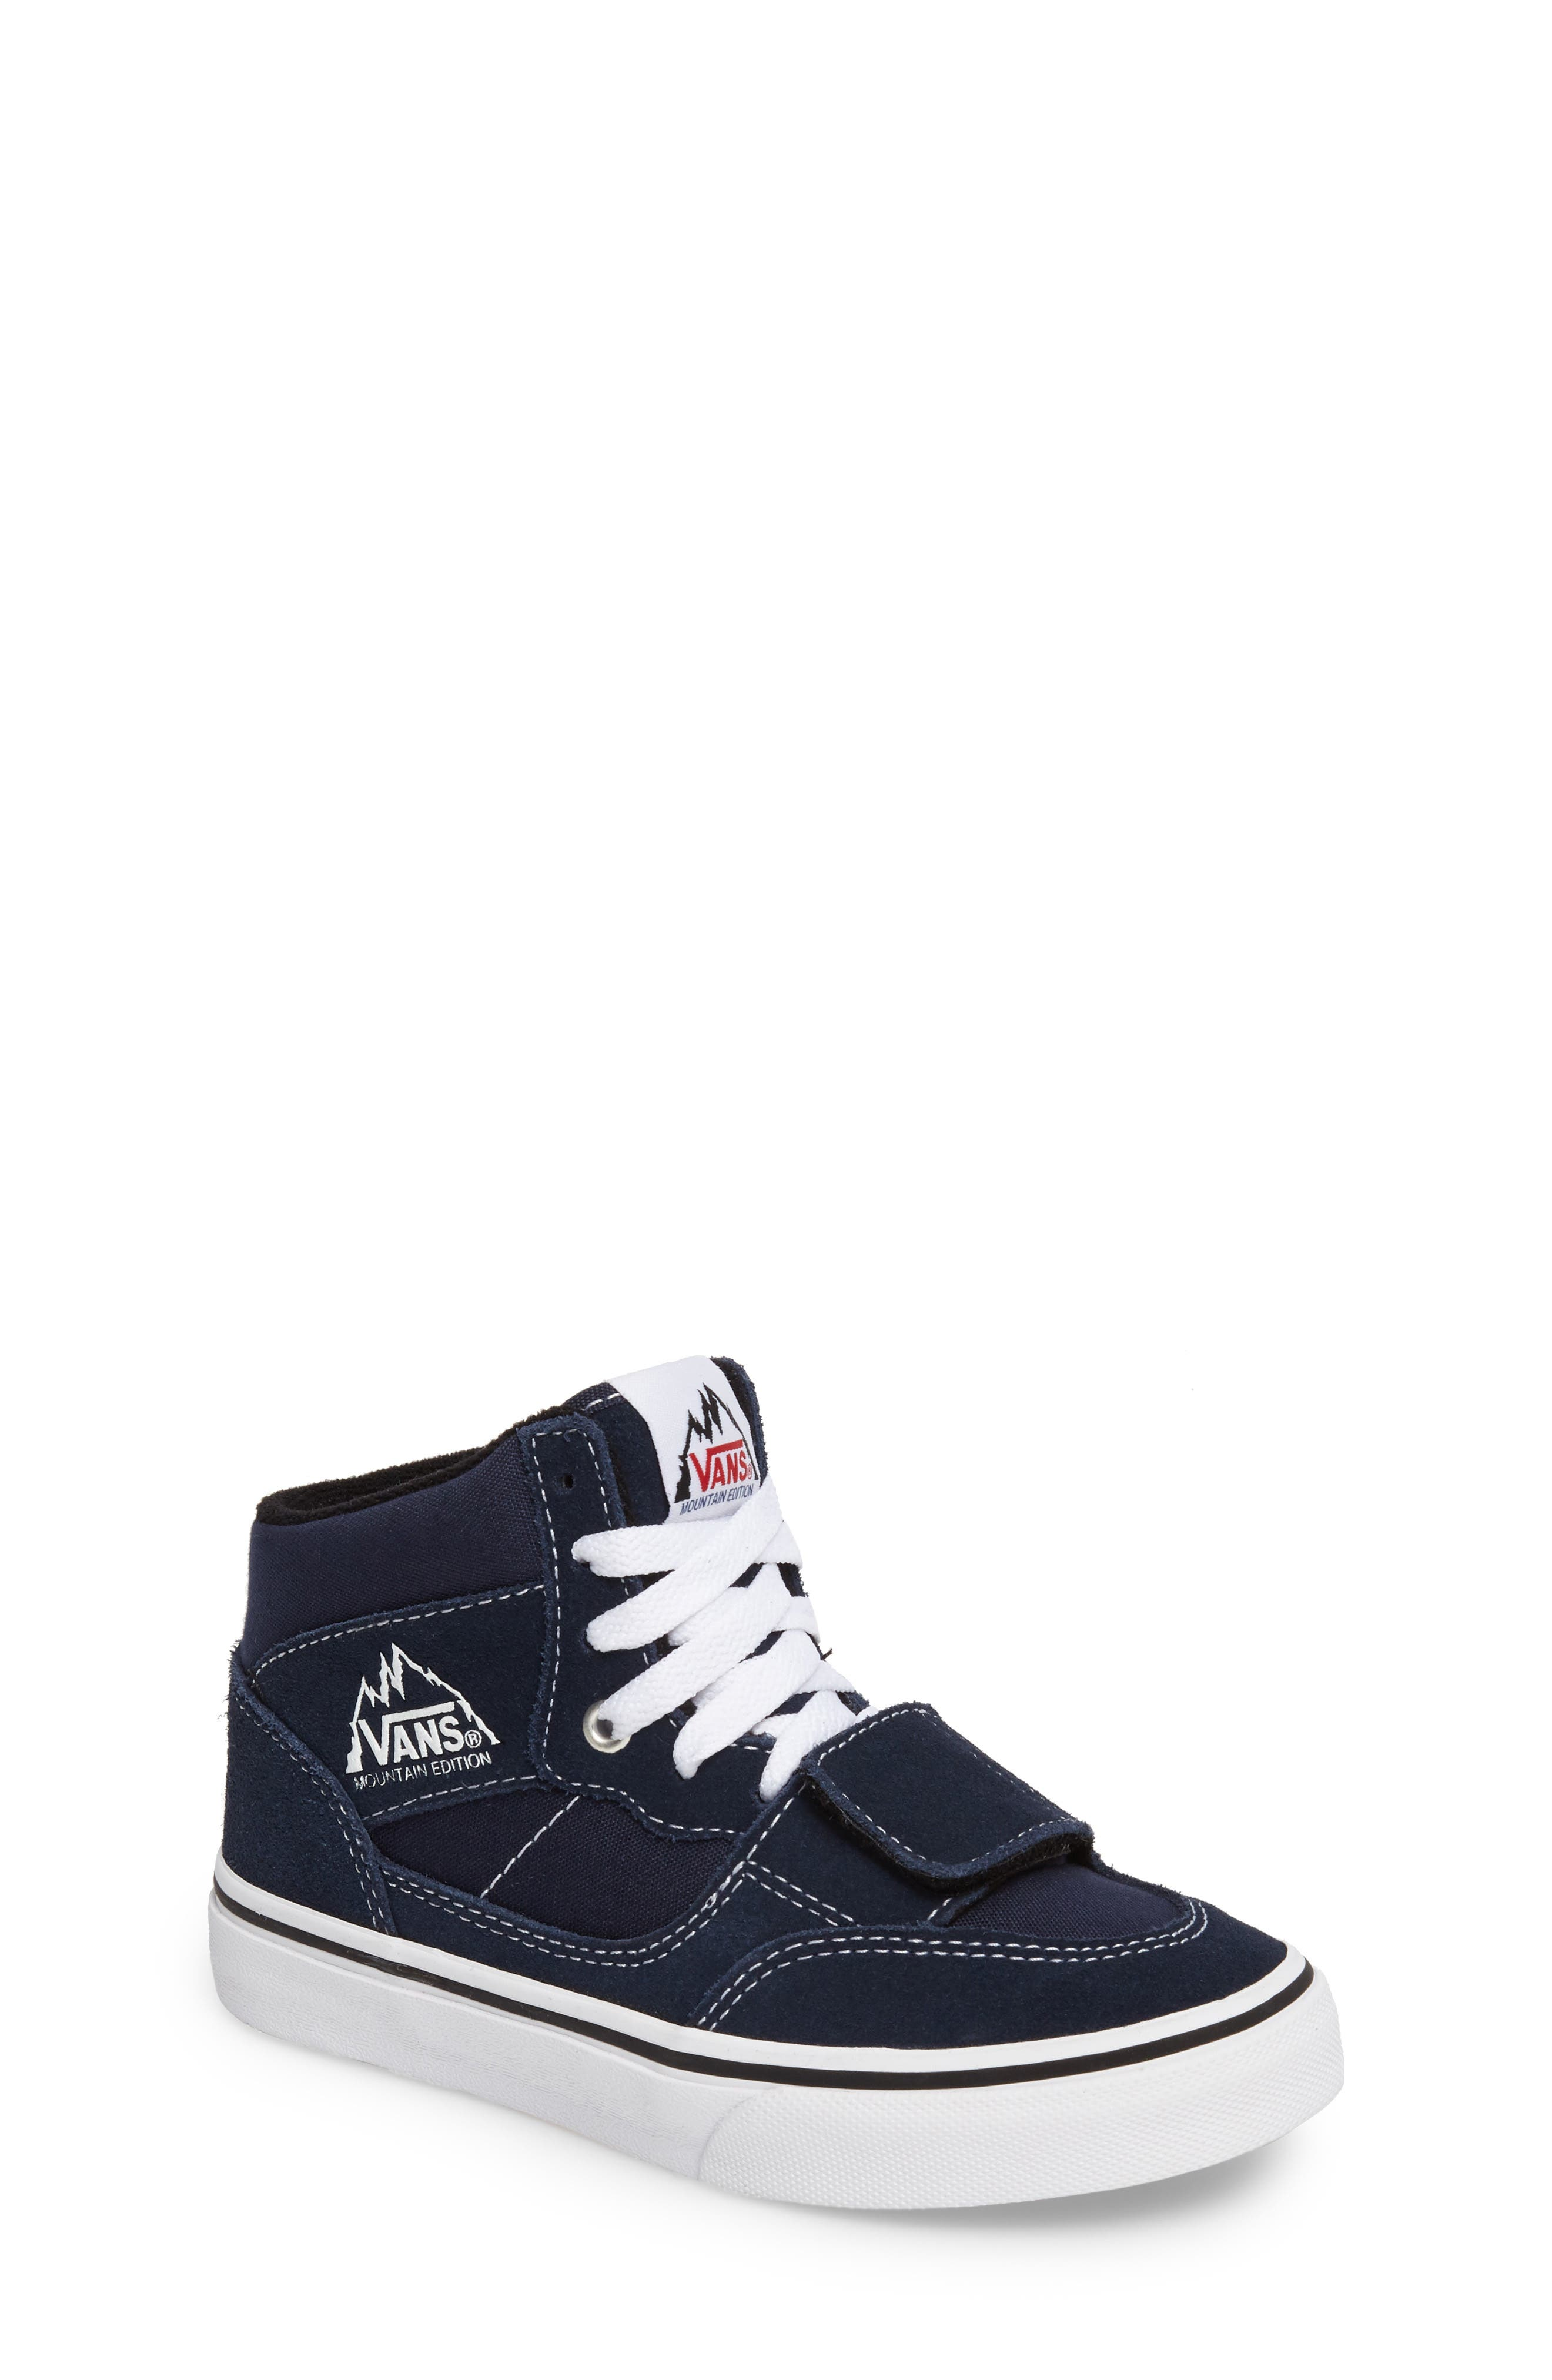 Mountain Edition Mid Top Sneaker,                             Main thumbnail 1, color,                             Dress Blue Canvas/ Suede